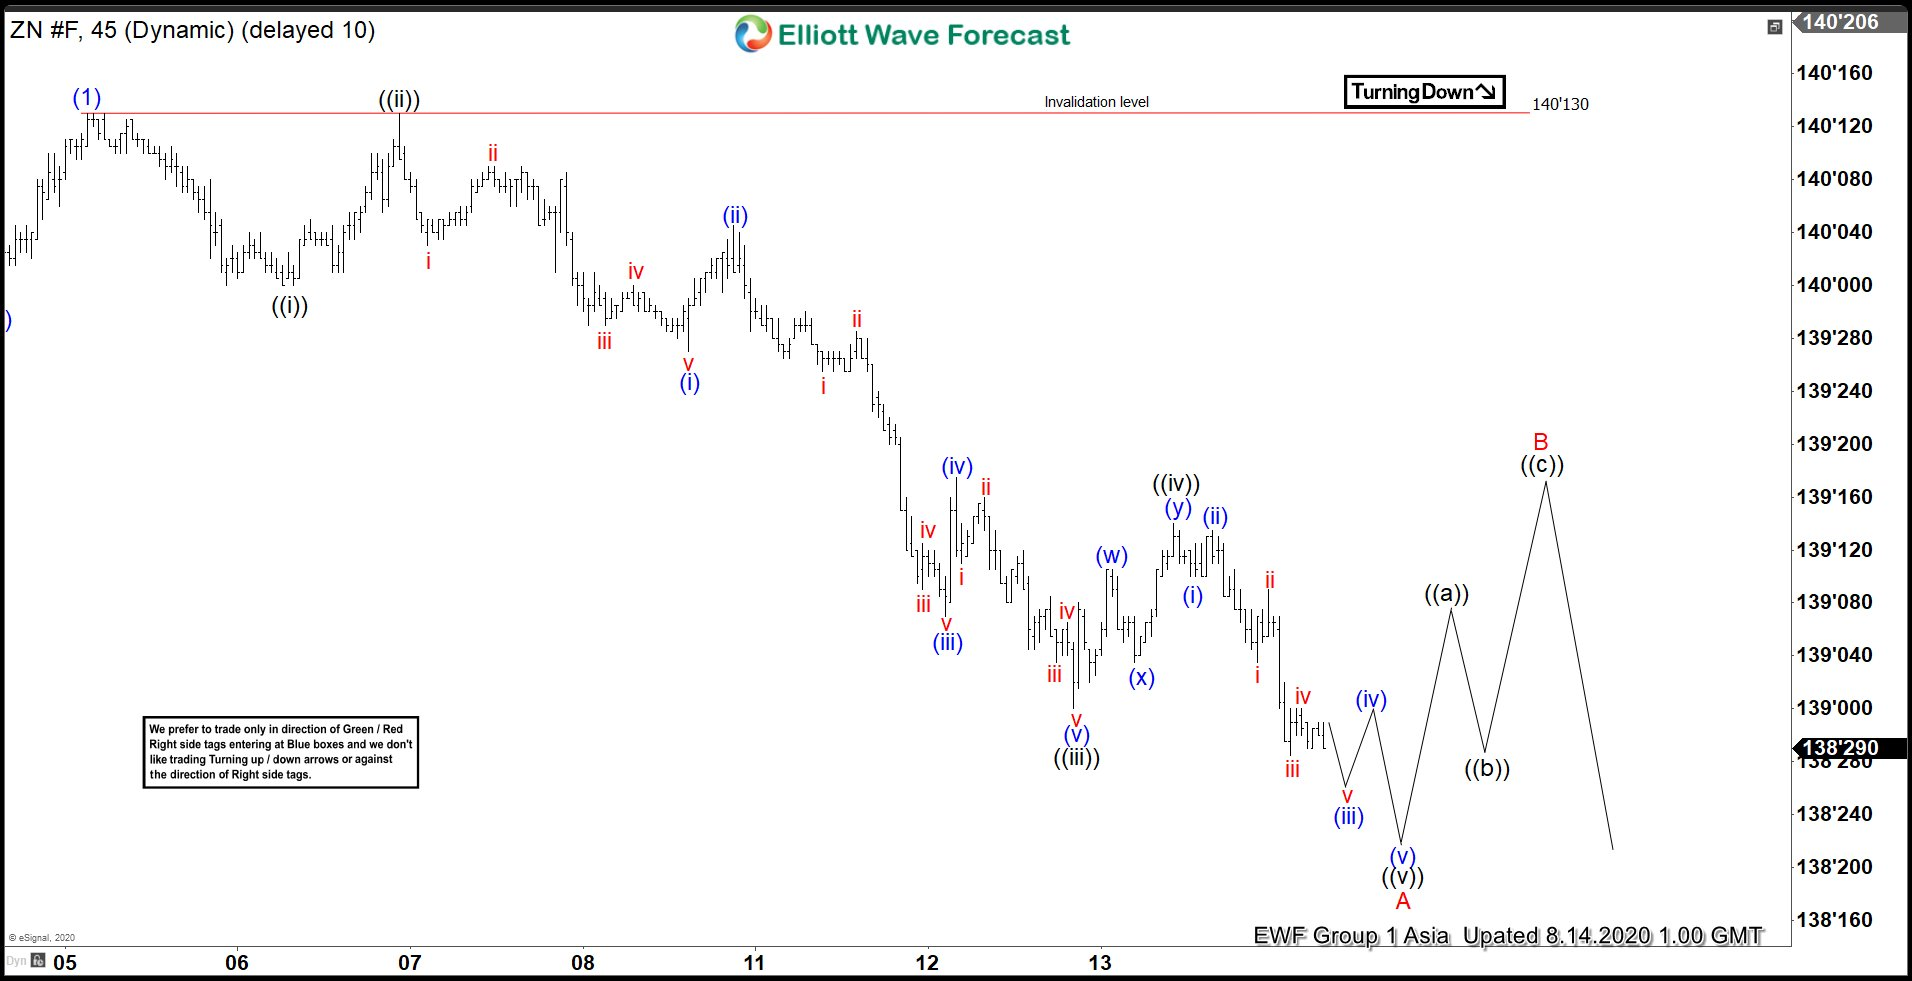 Elliott Wave View: Ten Year Notes (ZN_F) Impulsive Decline